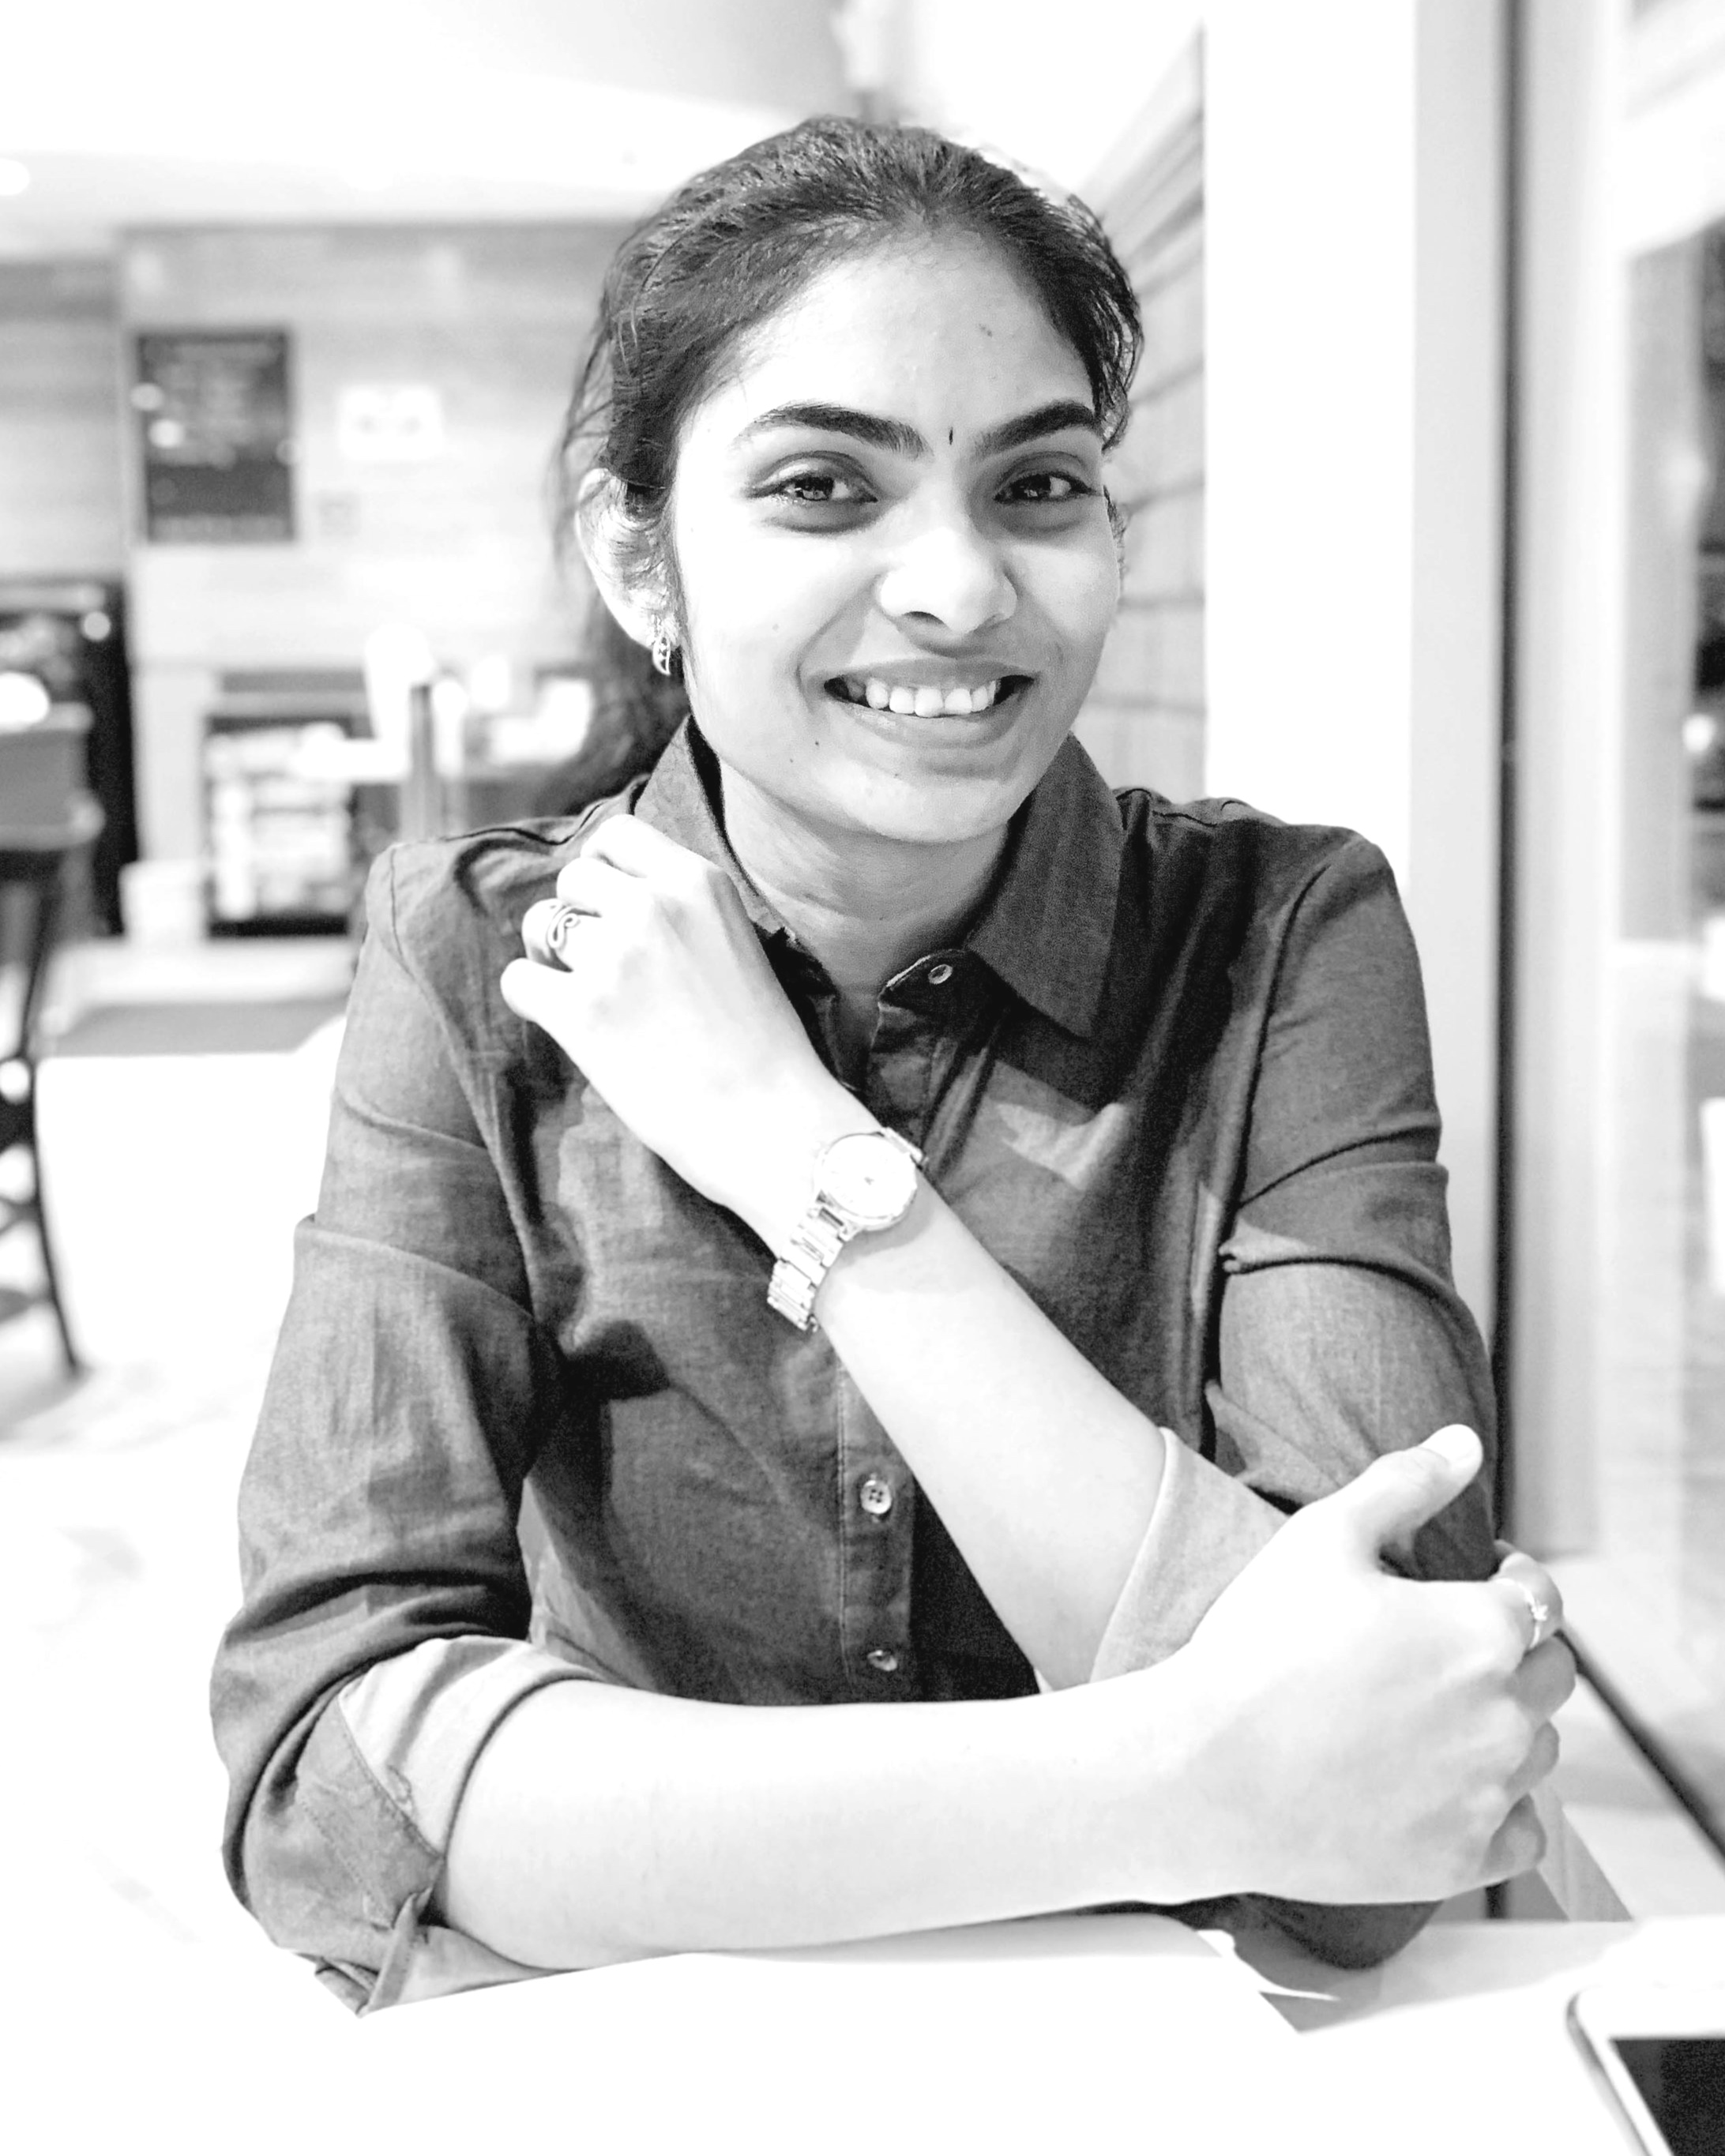 Hello! - I am Madhuri Putta, a Graphic Designer from India and now based in Austin, Texas. Having possessed a problem-solving creative design solution to the potential tasks, I am a passionate brand designer with excellent typography and printing skills. Also am skillful at comping, crafting, color scheme usage and paying attention to details, interested in logo designing, packaging, and layout design. I also have the zeal to learn about product designing and web designing. Being a thinker, I enjoy poetry which enhances my thought process to look at things in life artistically. Additionally, talented in Carnatic music (vocal) and Kuchipudi dance, a traditional dance form of India. Plays Volleyball and Badminton. I believe in spiritual cleansing and so practices Yoga and Meditation.